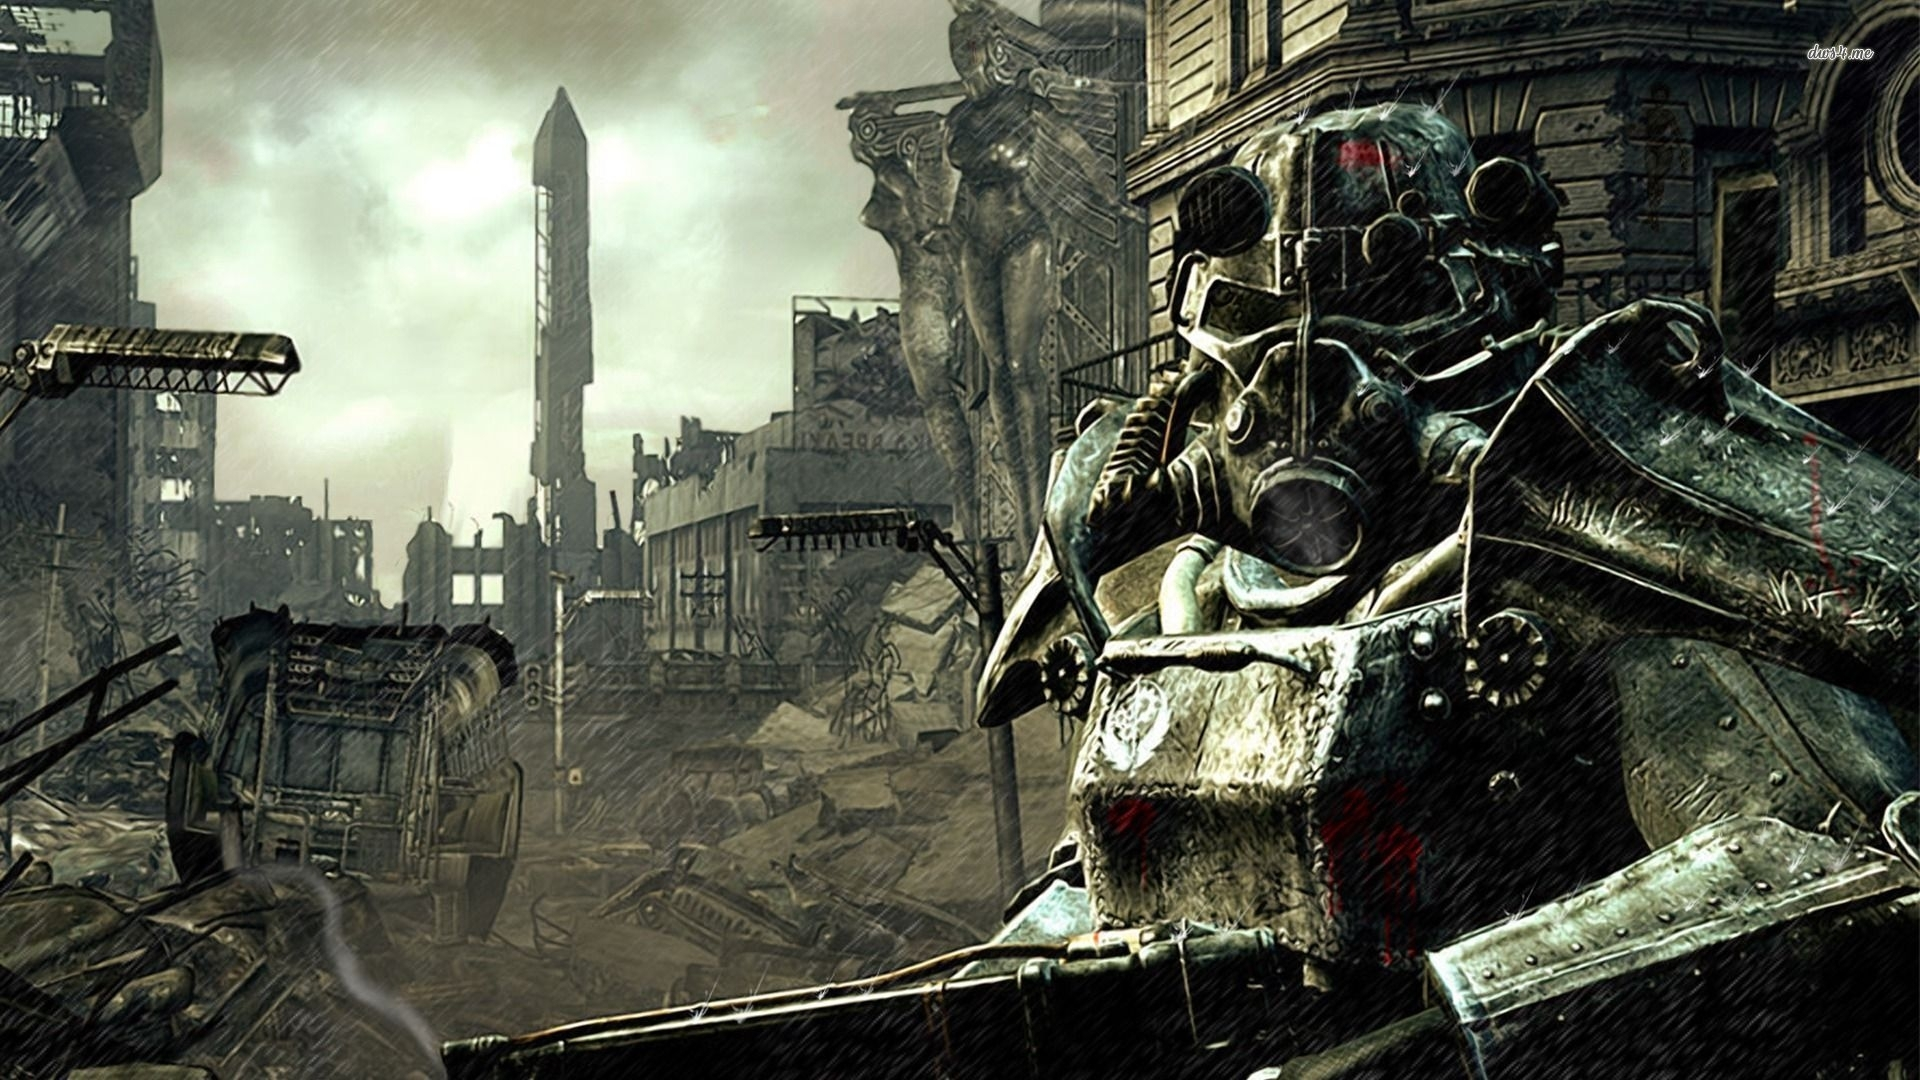 video game fallout 3 wallpapers (desktop, phone, tablet) - awesome